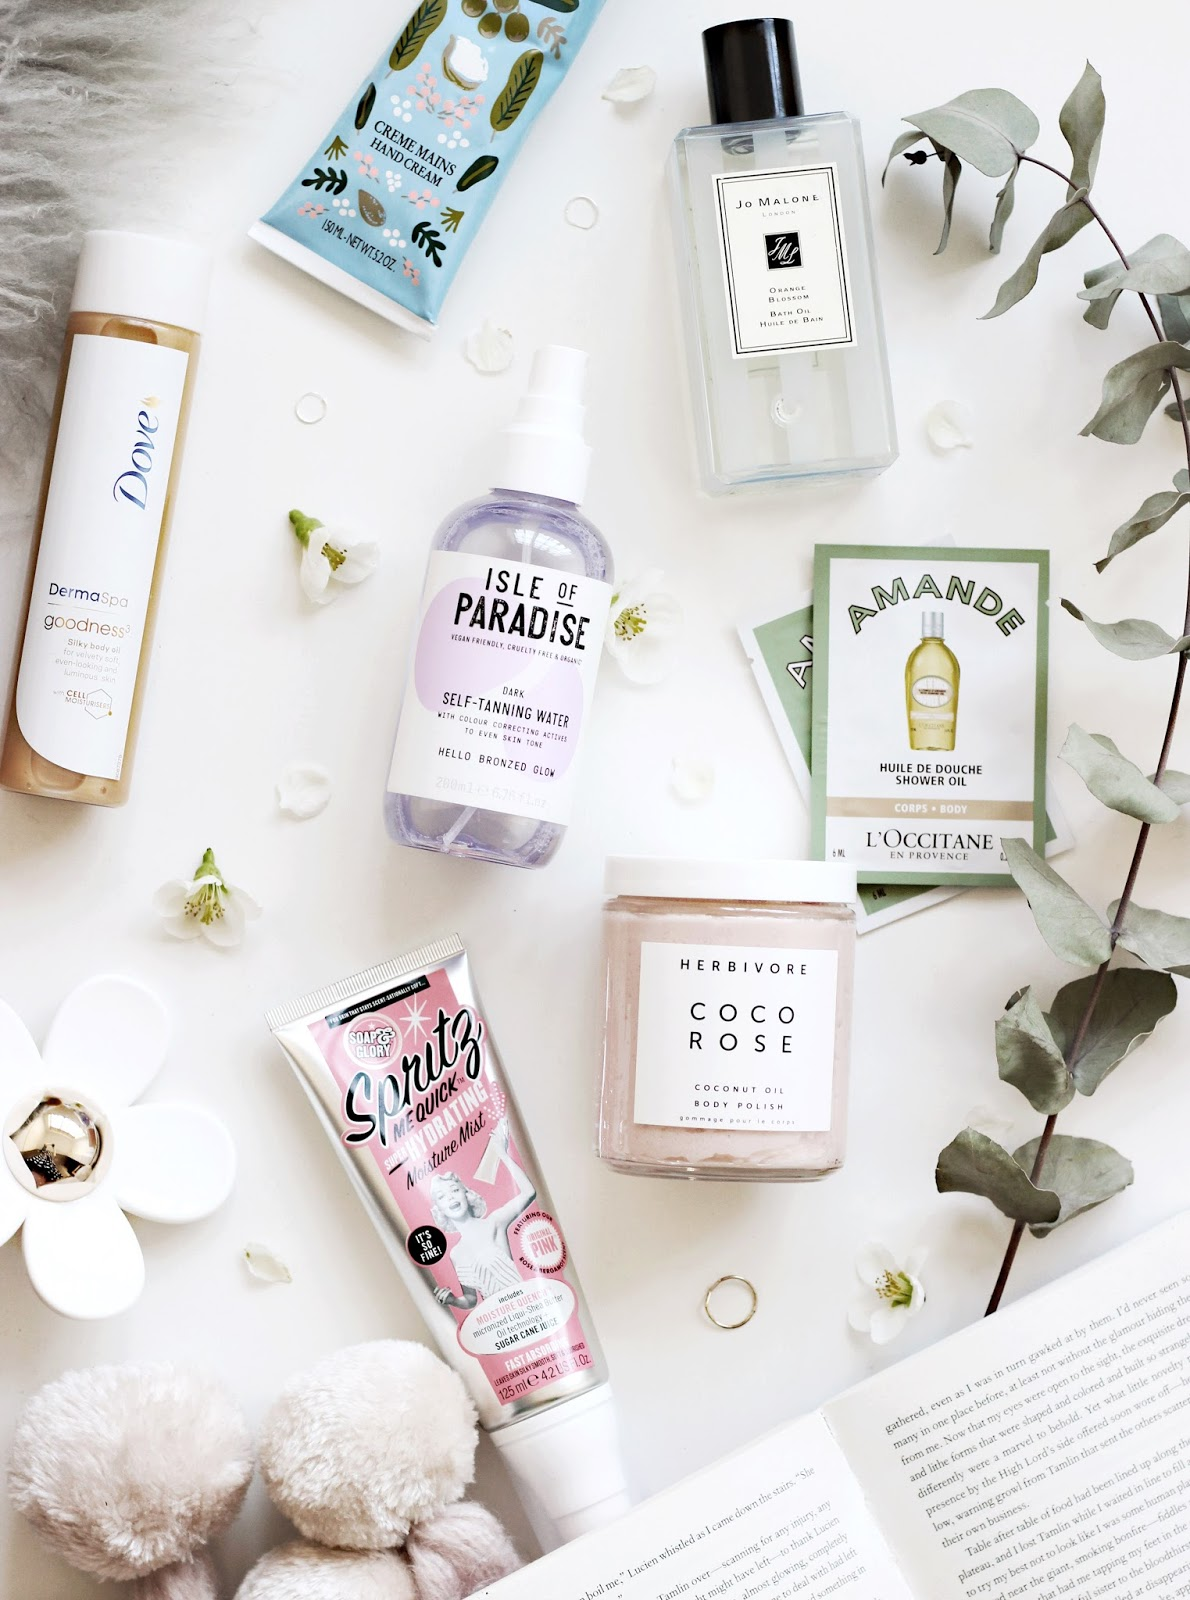 L'Occitane Body Care, Soap and Glory, Dove, Jo Malone, Isle of Paradise